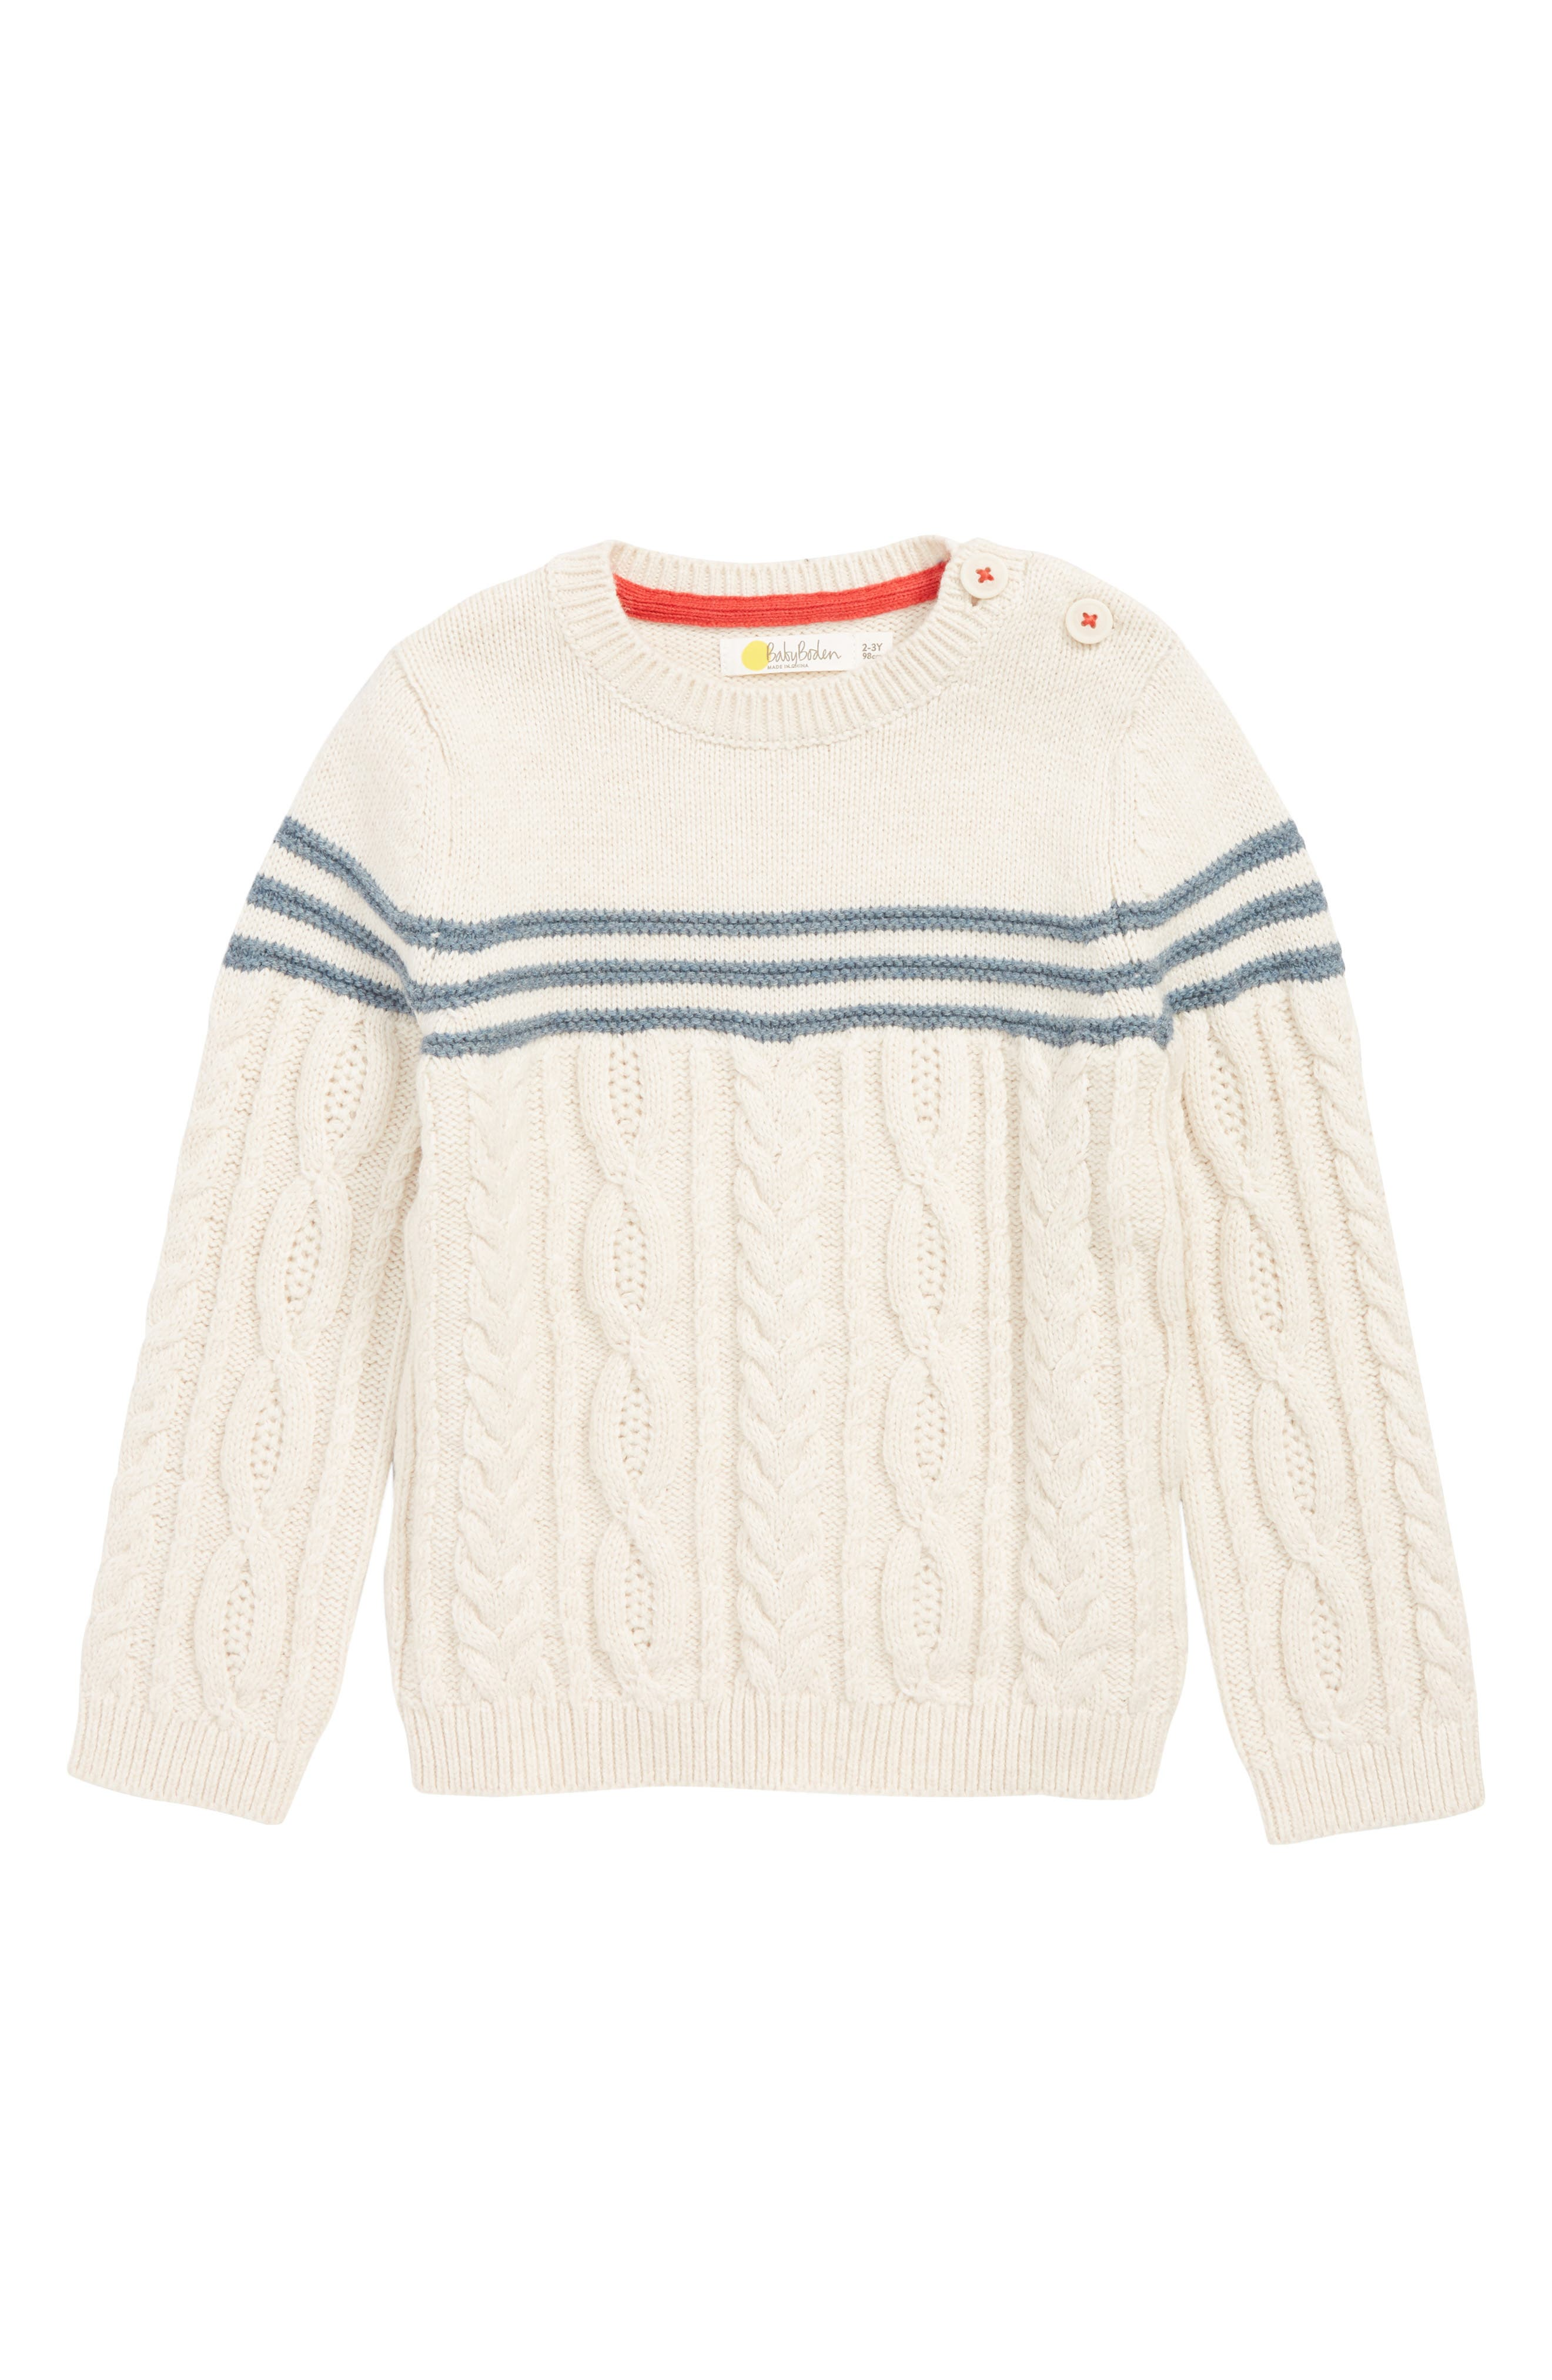 Toddler Boys Mini Boden Fun Cable Knit Sweater Size 34Y  Ivory